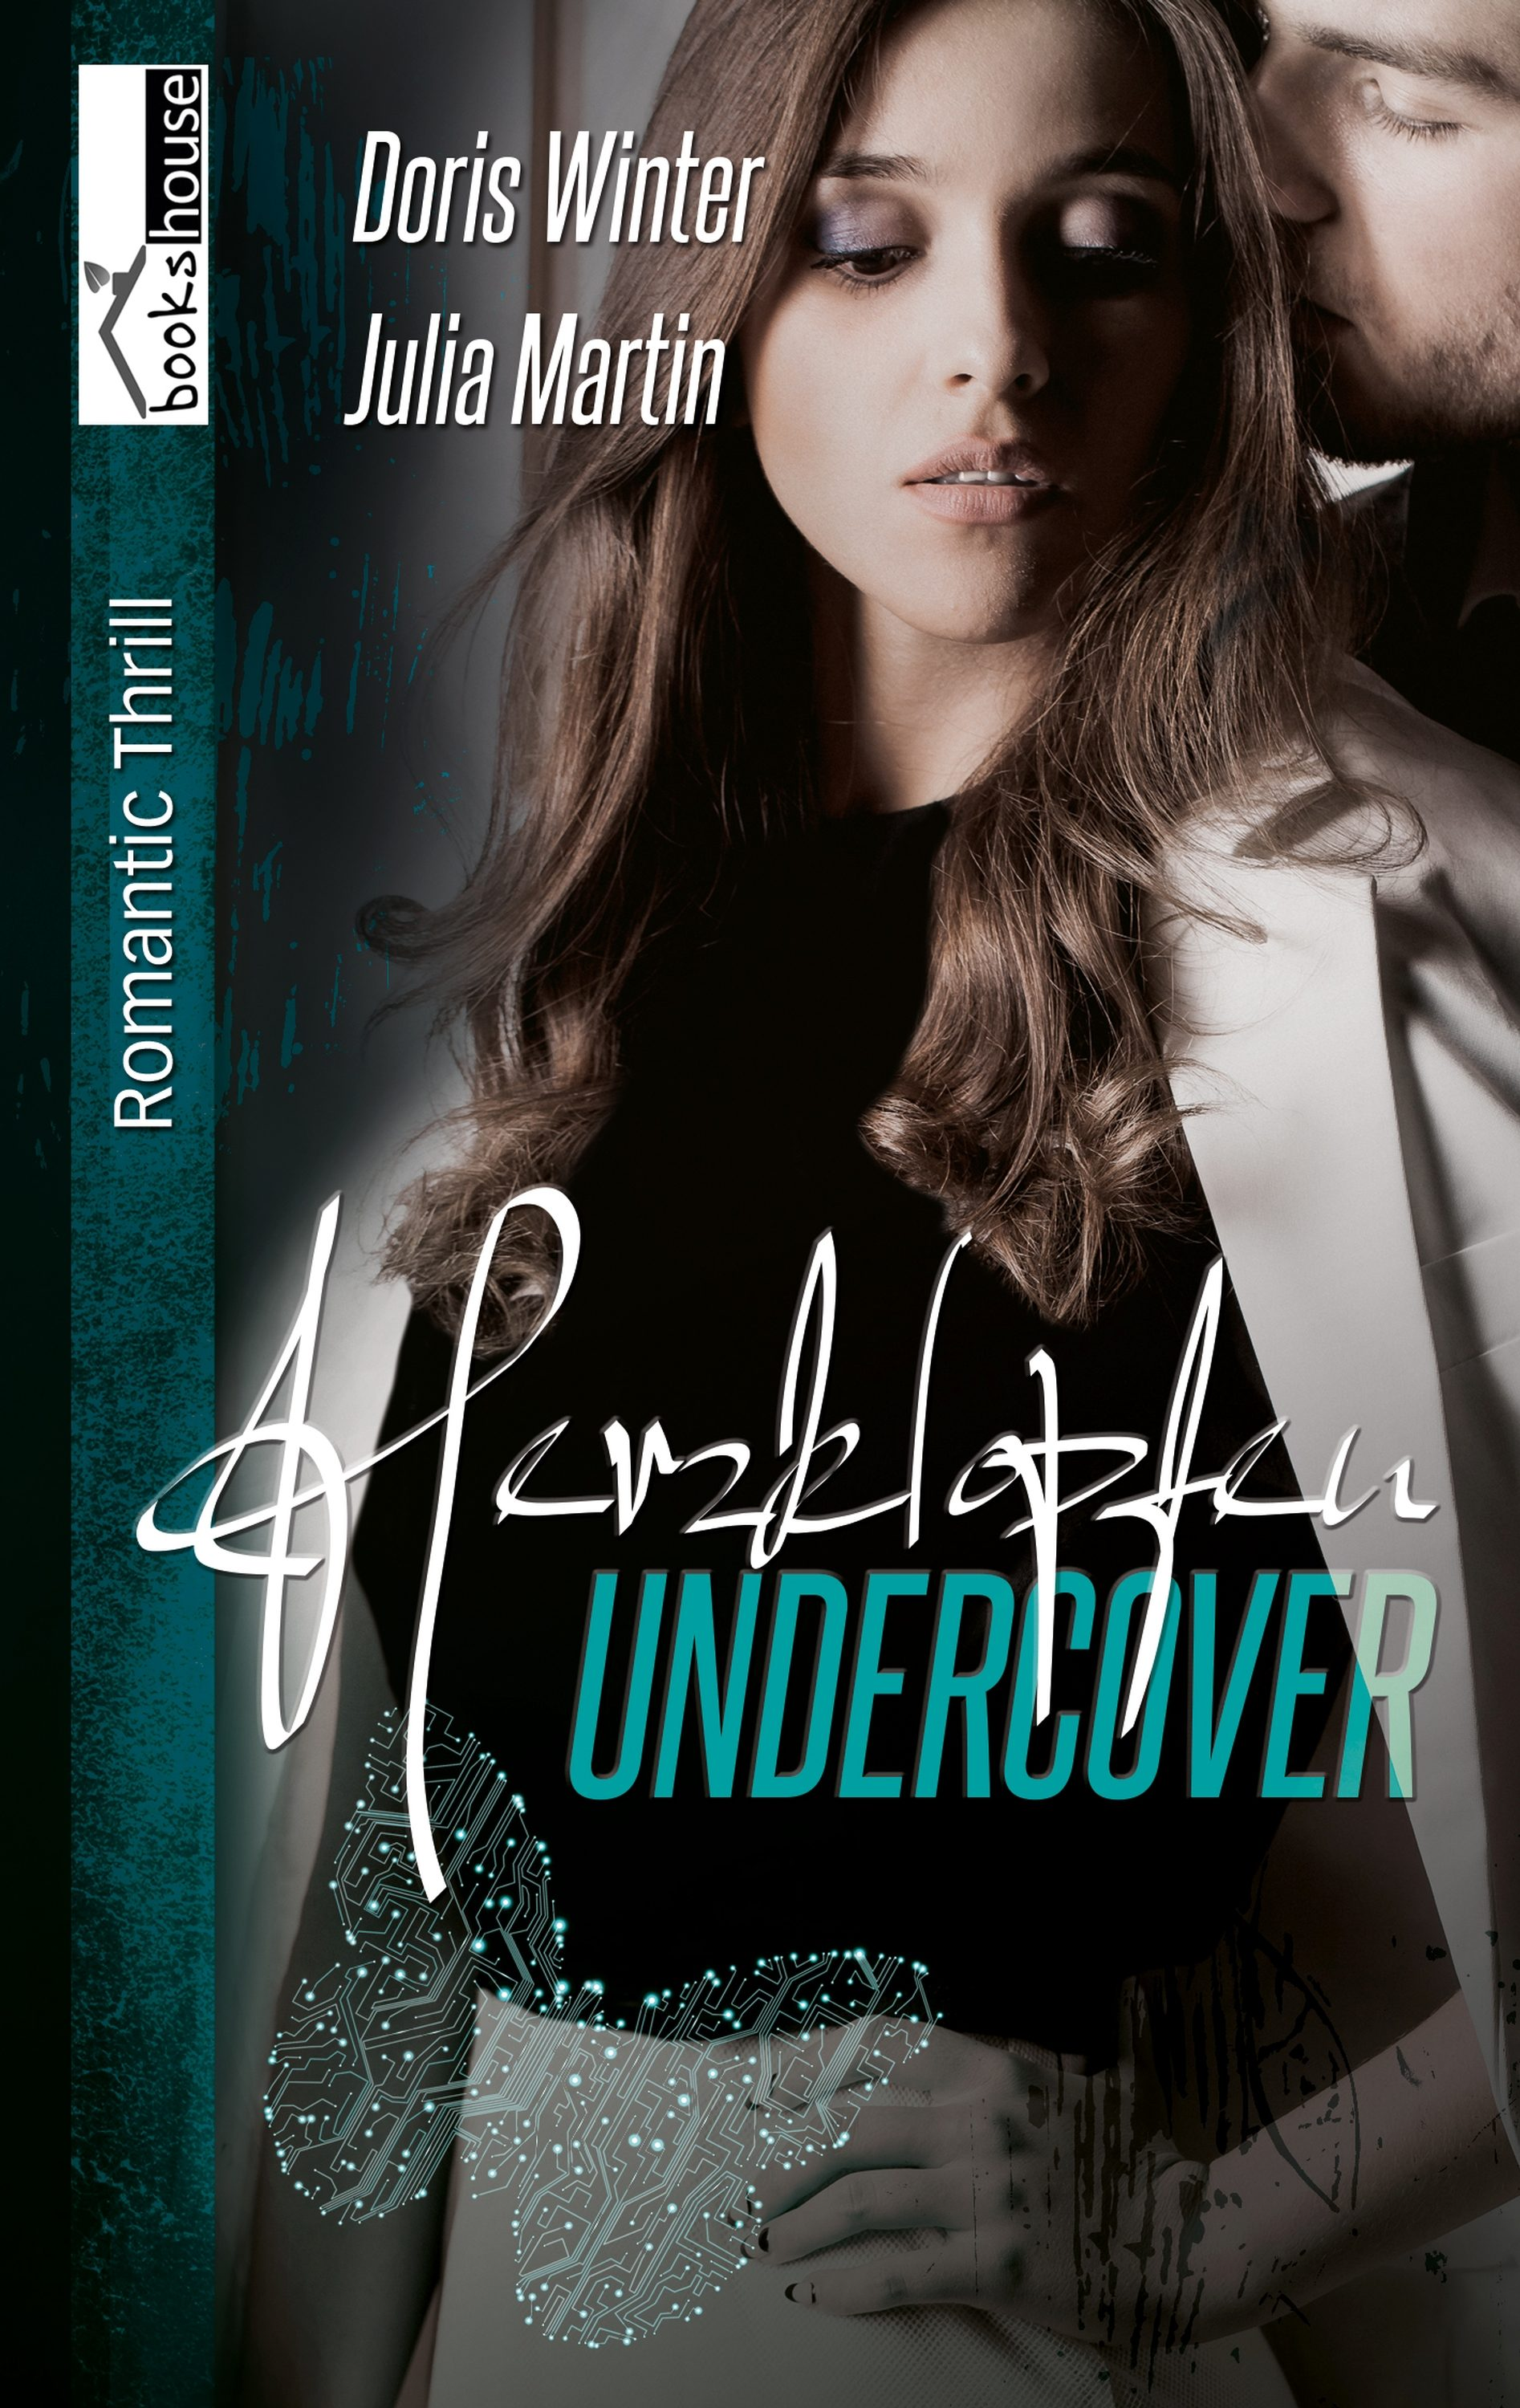 herzklopfen undercover (ebook)-doris winter-julia martin-9789963539741